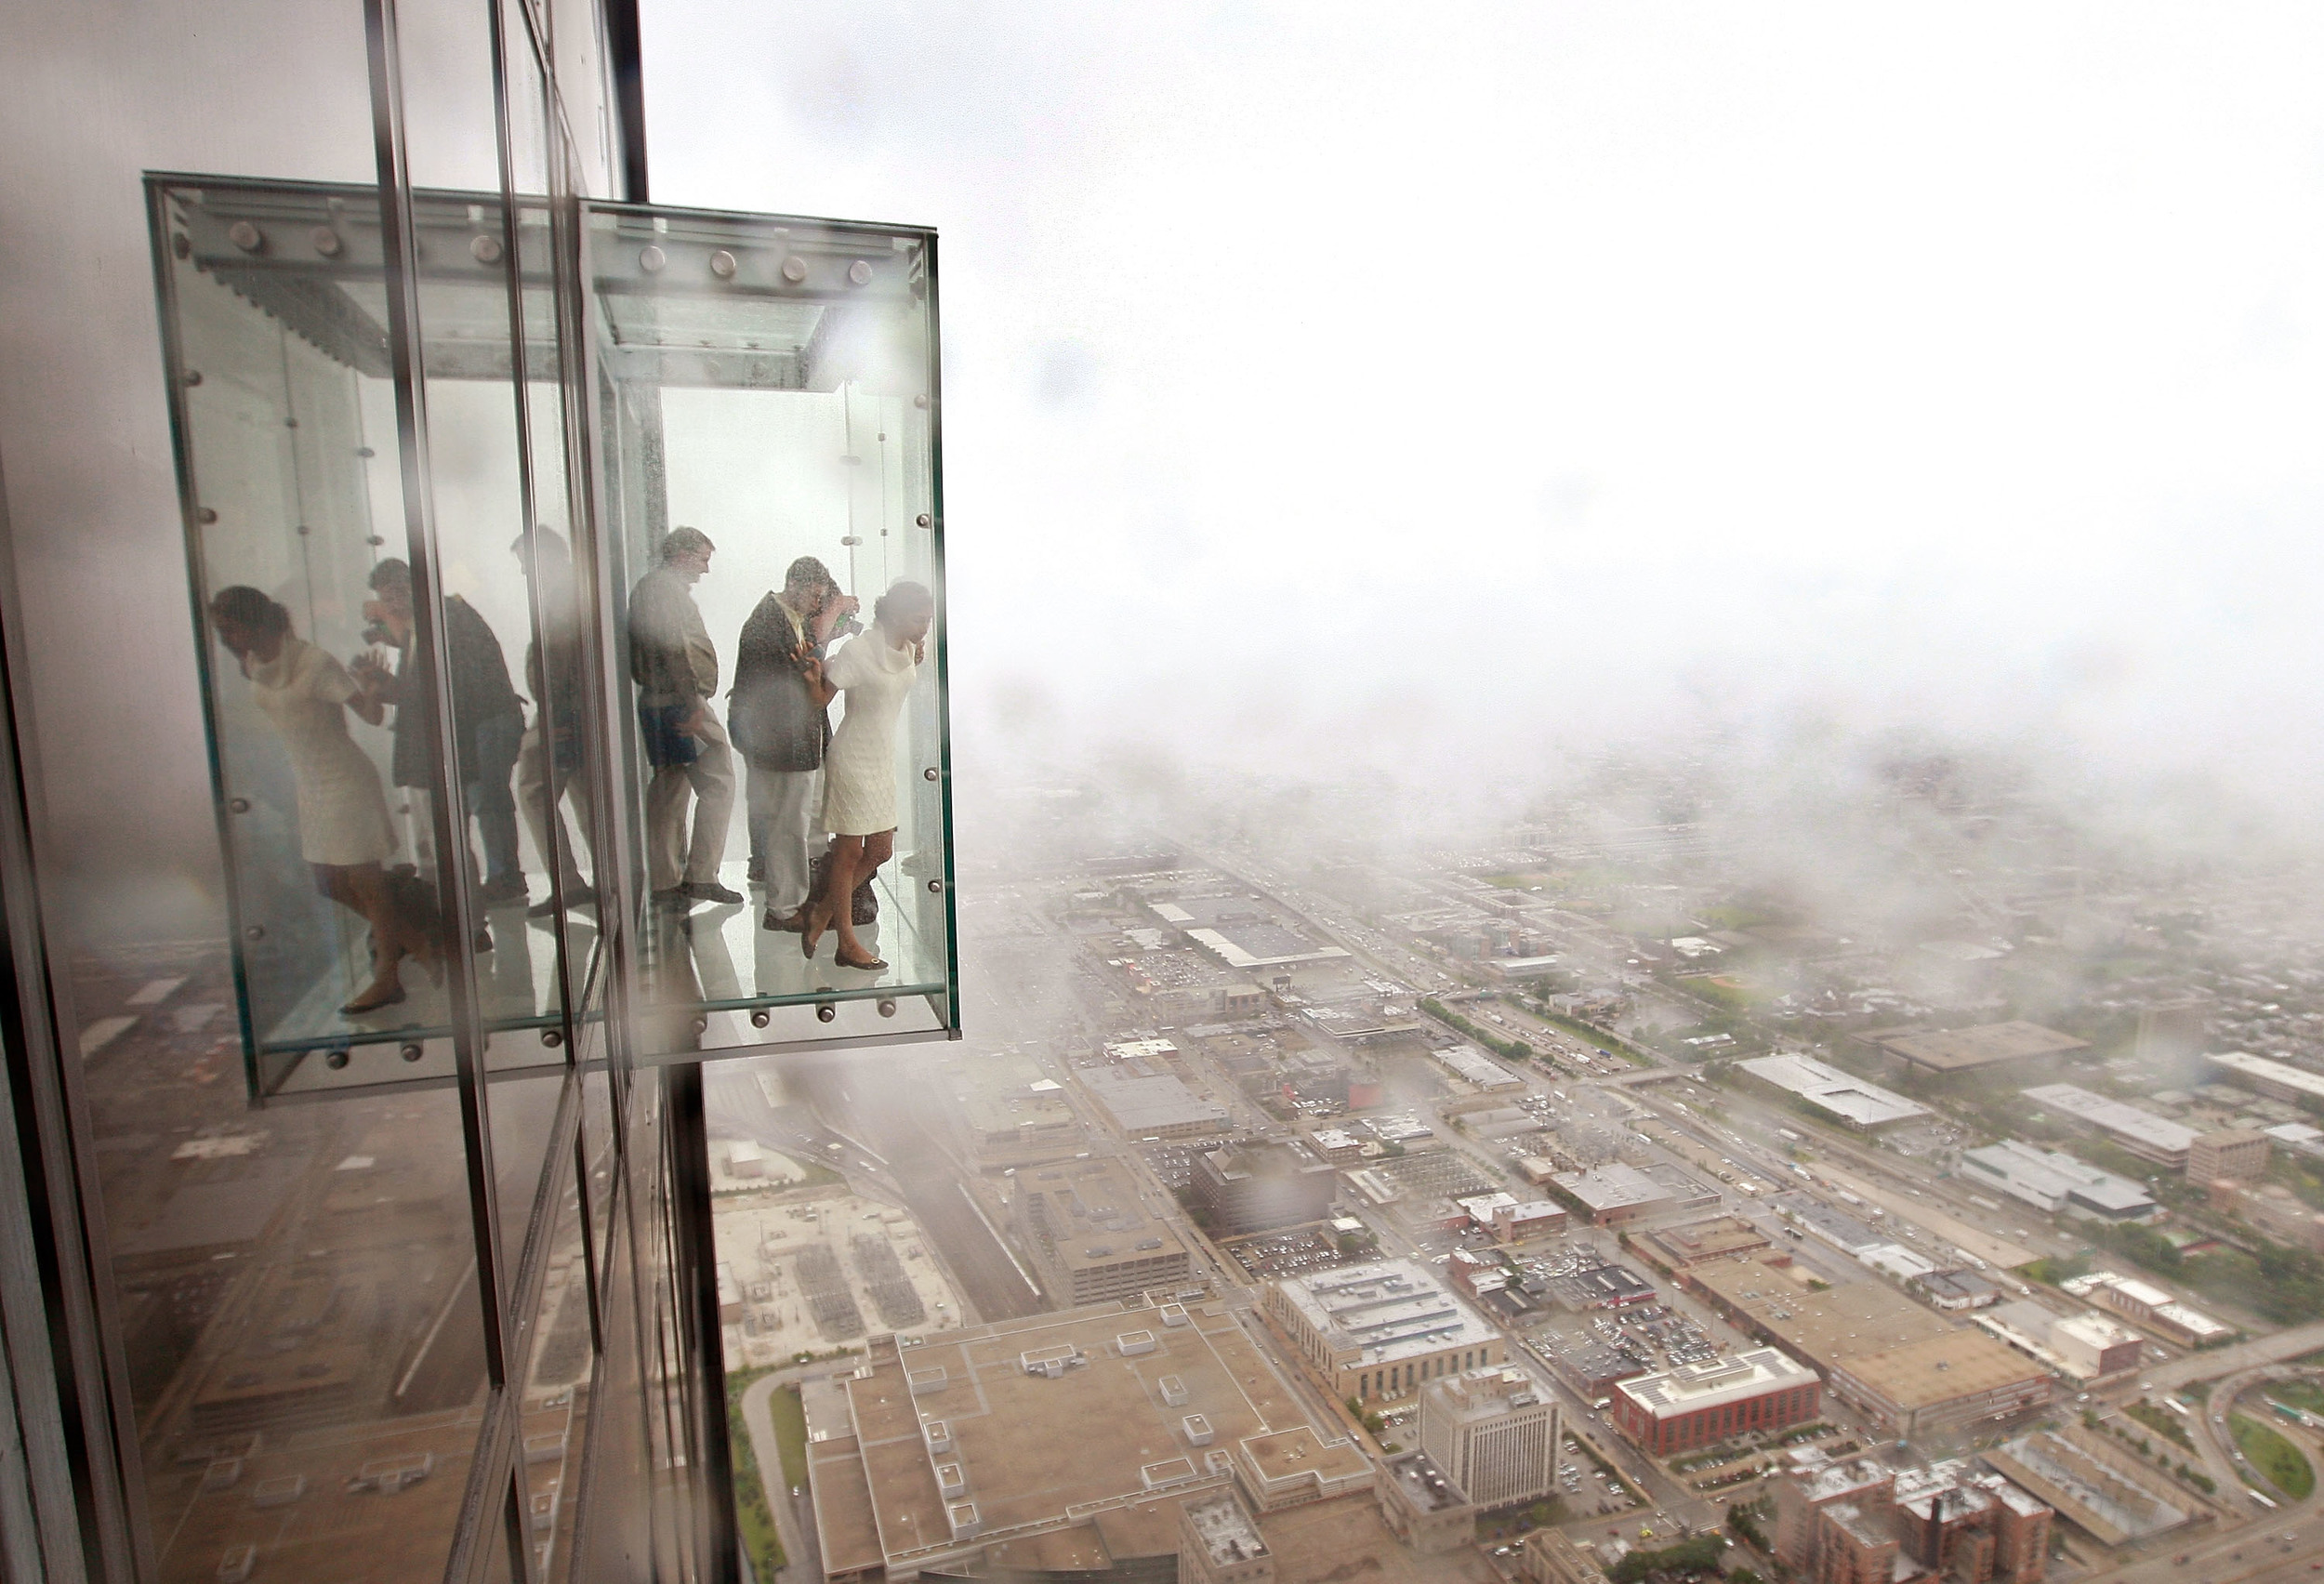 protective coating on willis tower ledge cracks under